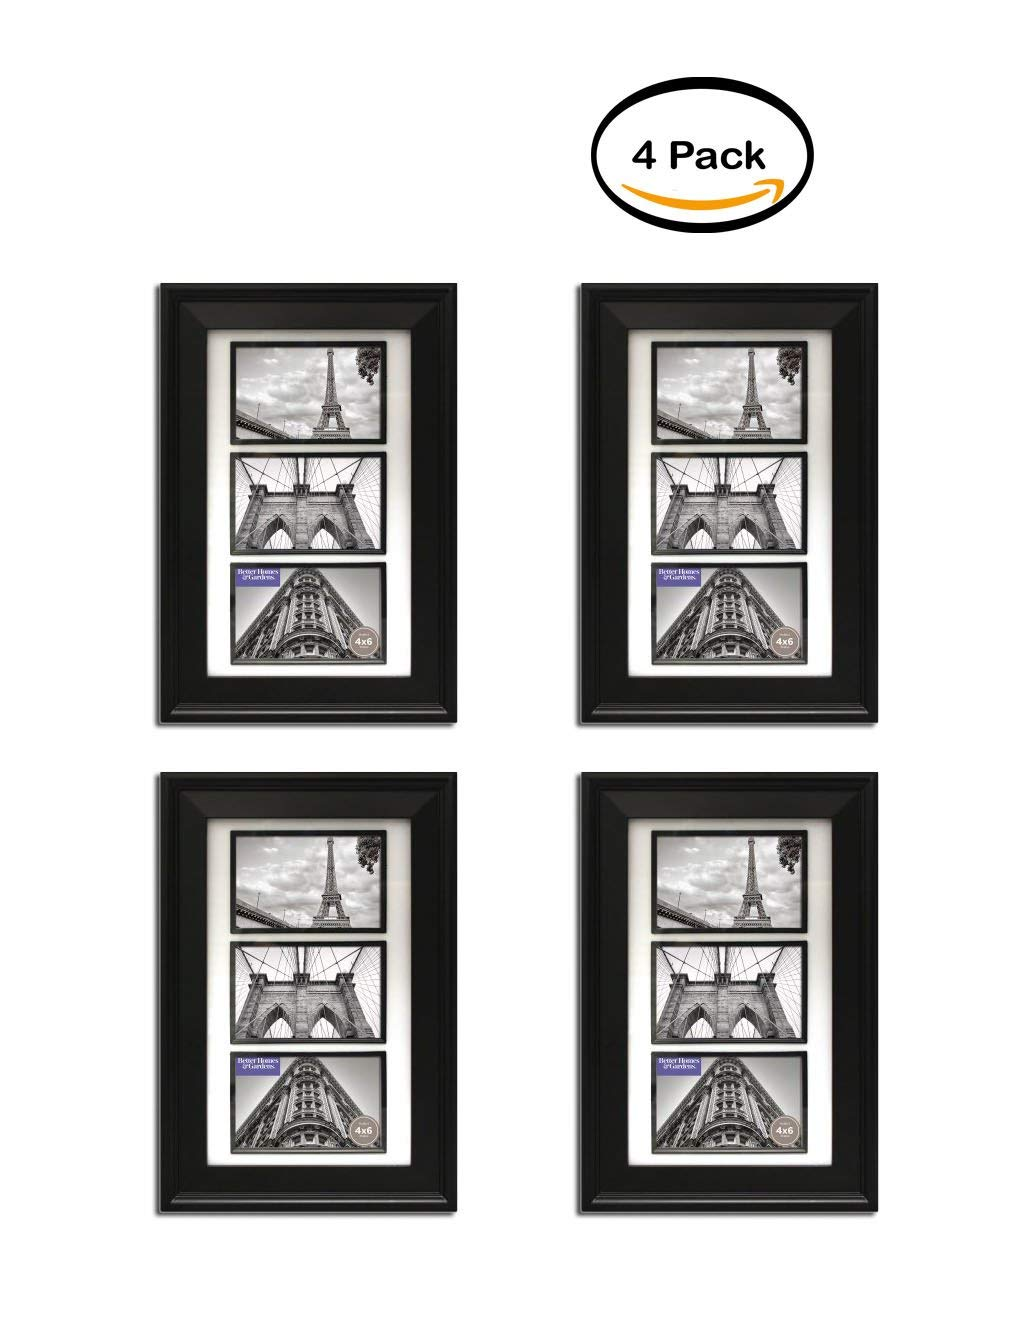 Cheap 3 Opening 4x6 Picture Frame Find 3 Opening 4x6 Picture Frame